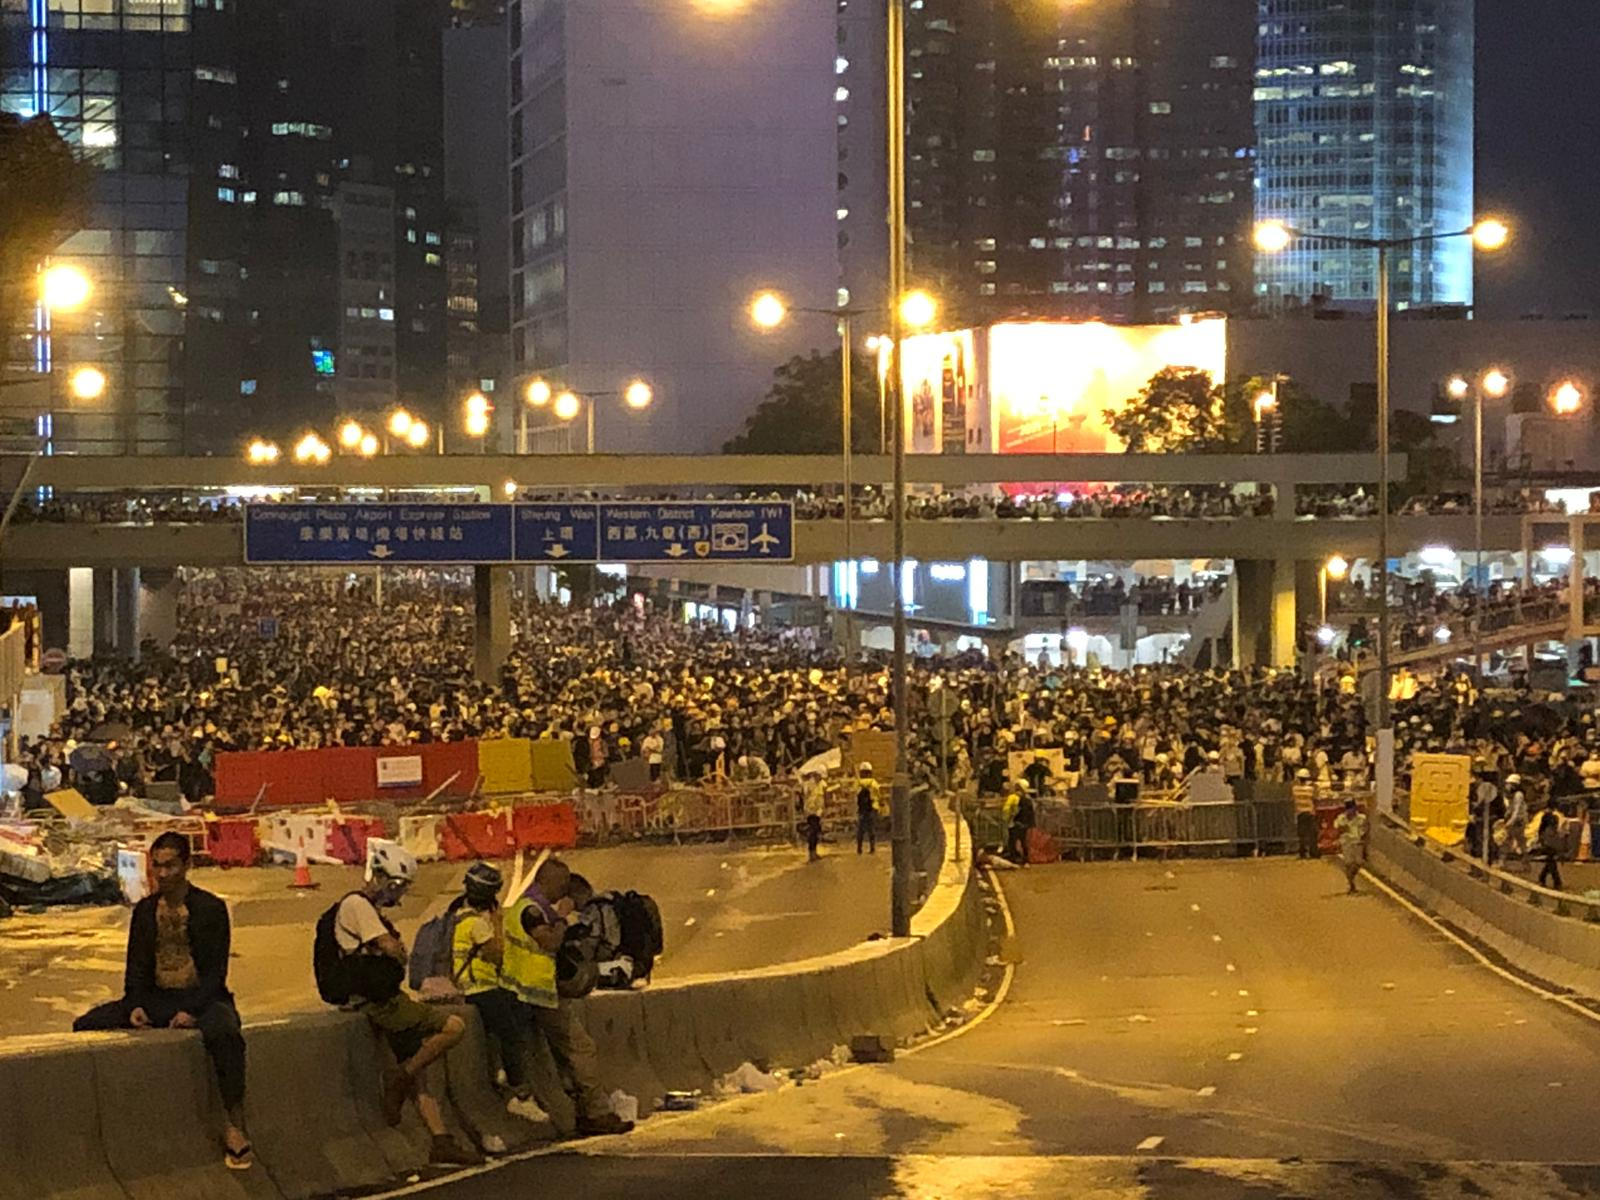 Protesters gather on Harcourt Road in front of City Hall.